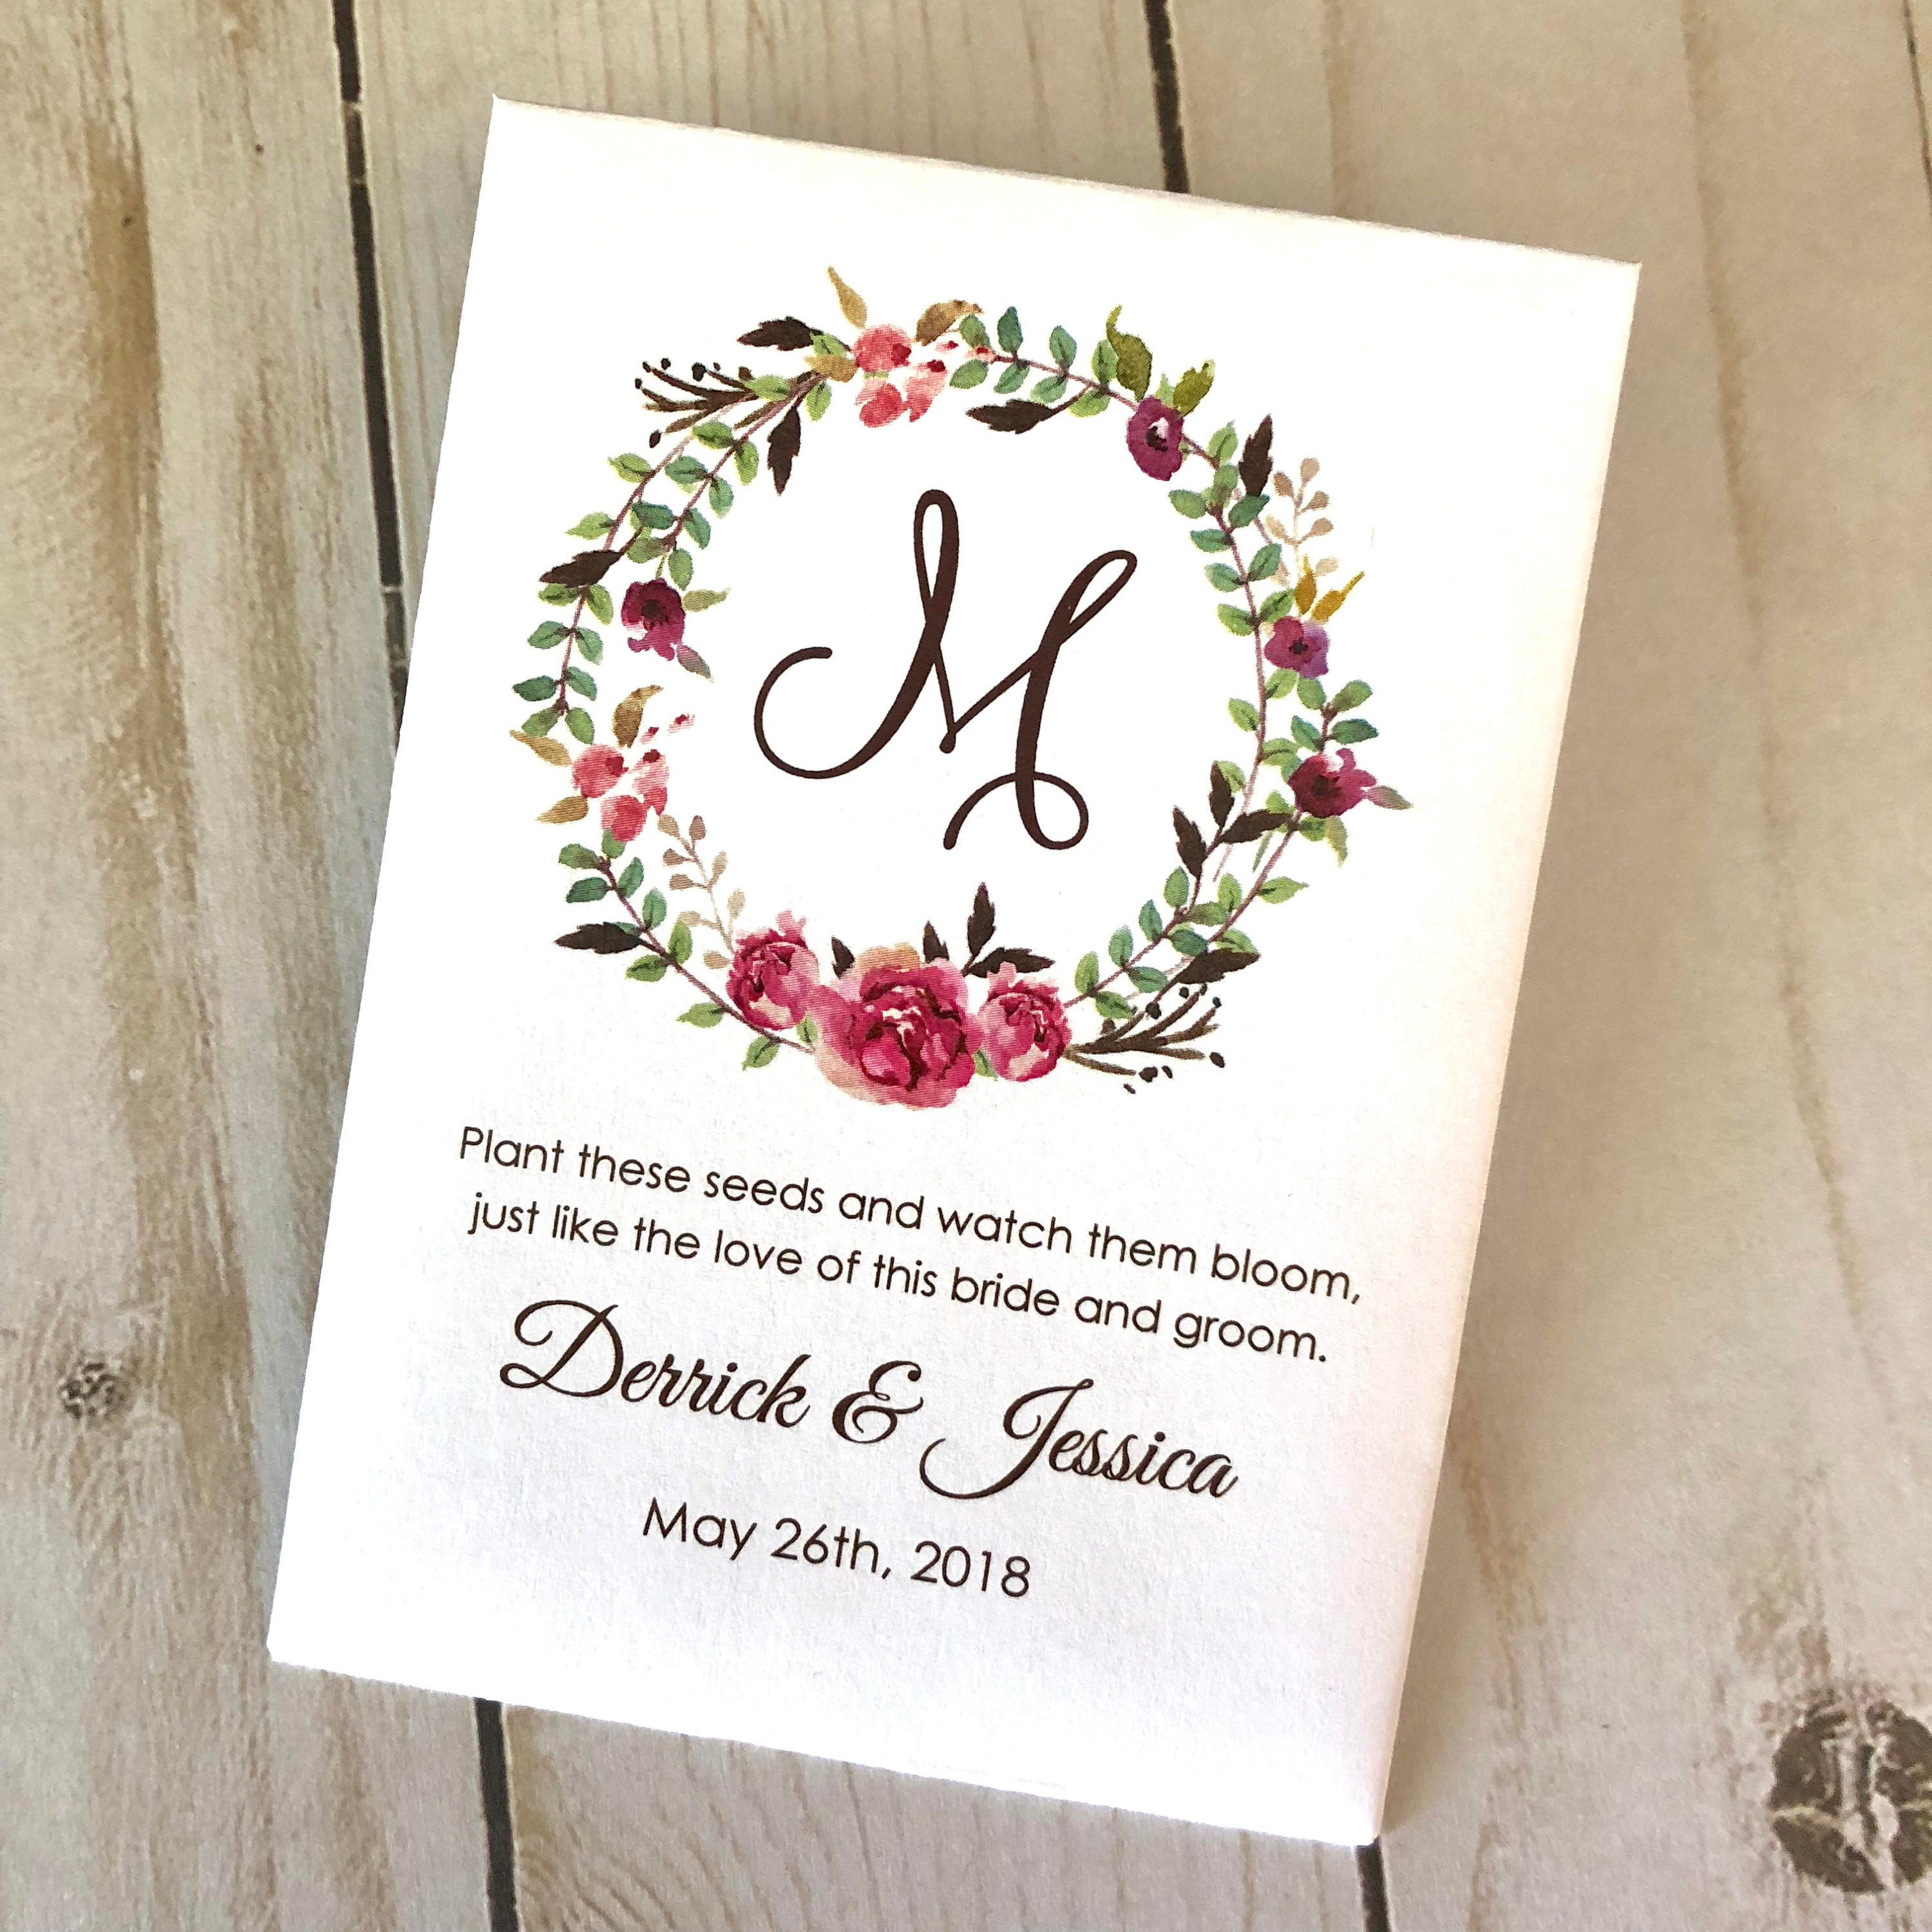 Personalized Seed Packets for Wedding Favors | Giftwedding.co